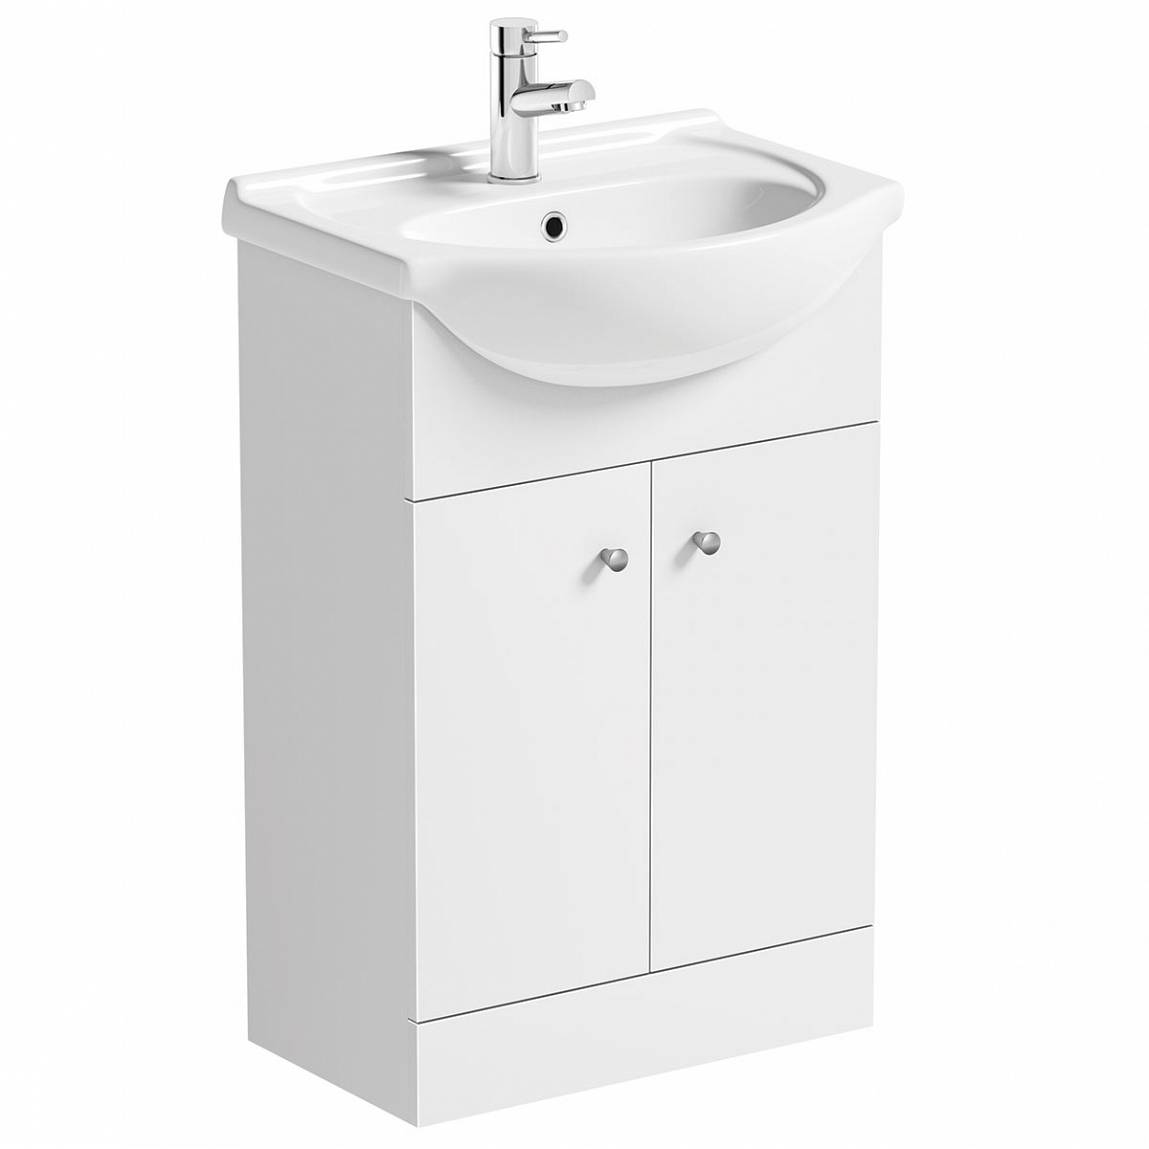 Image of Prague White Floor Standing 55 Unit with Basin